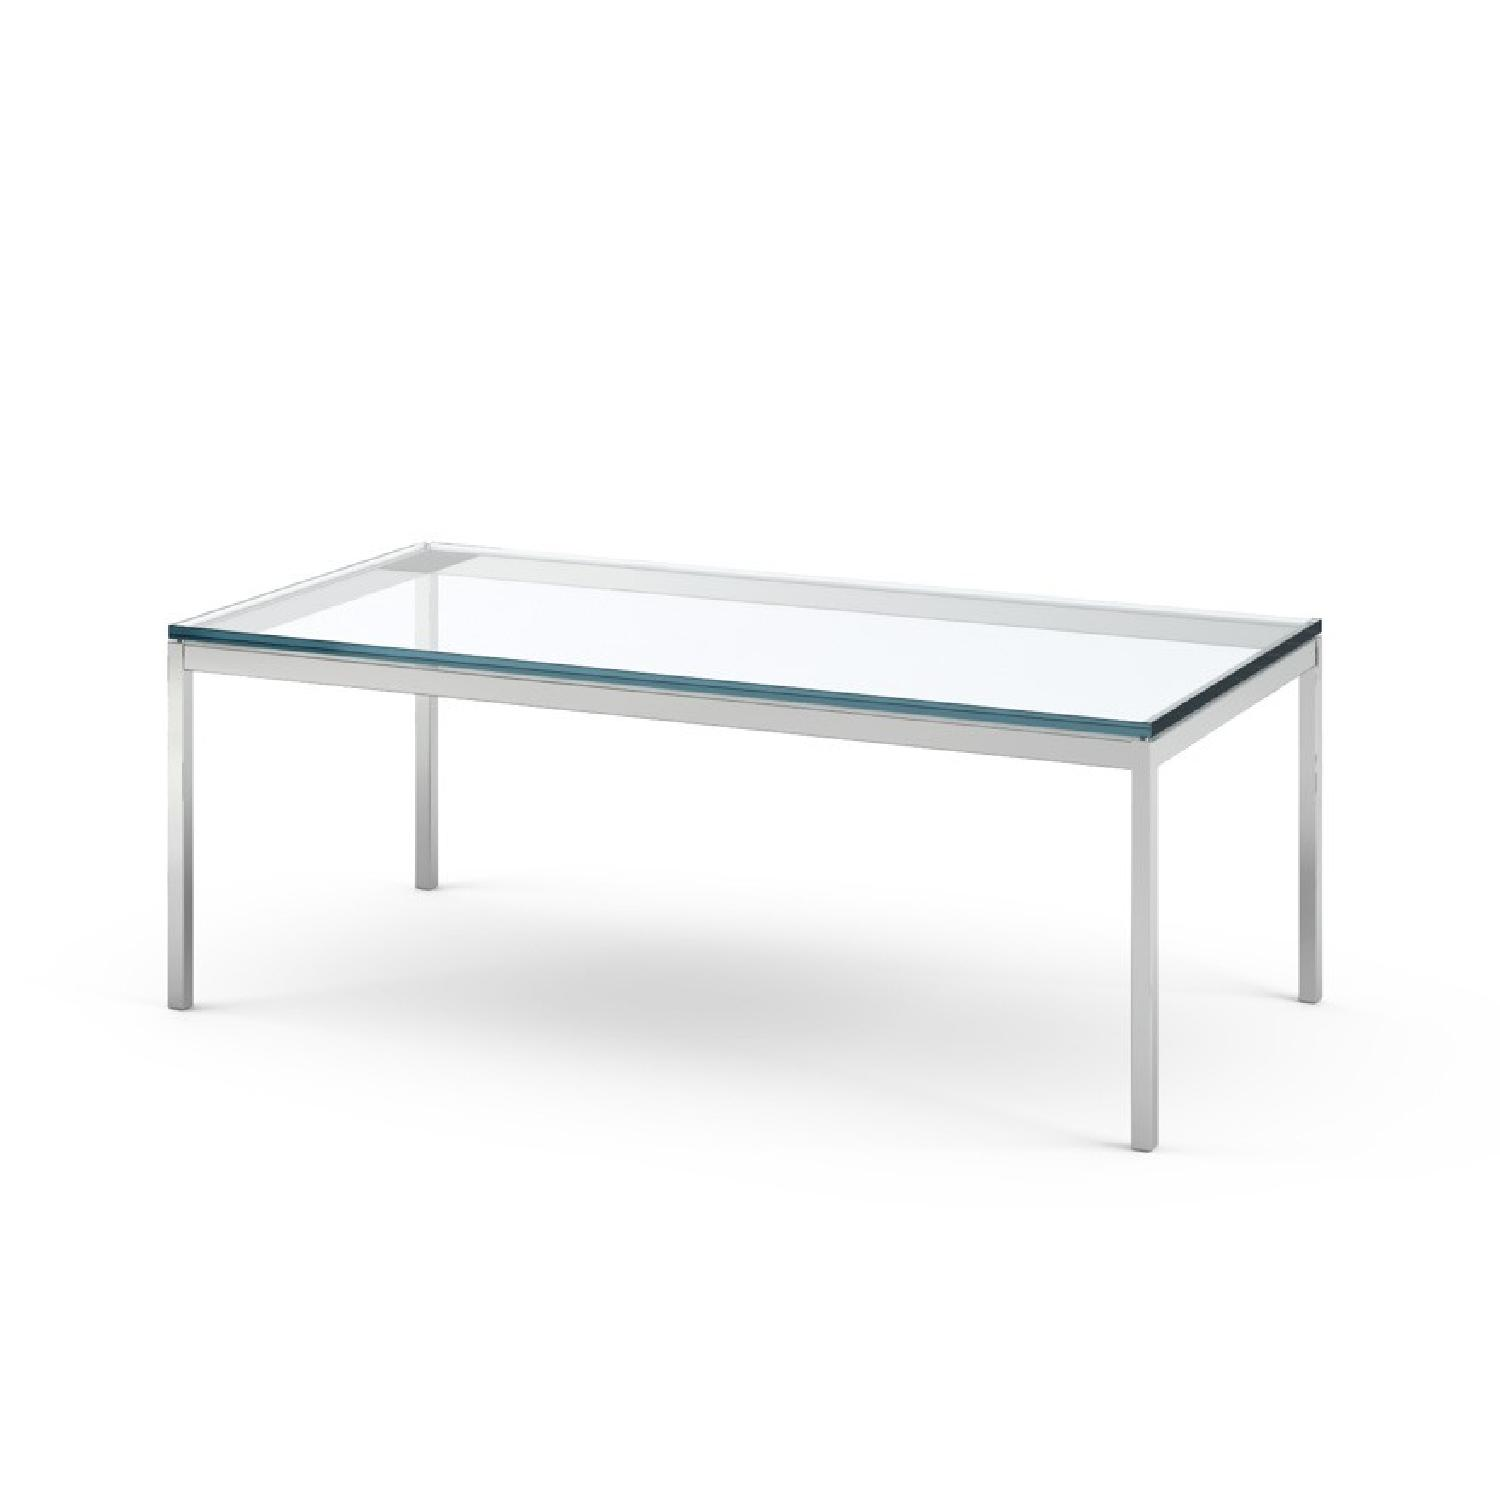 Florence Knoll Glass Coffee Table - image-0